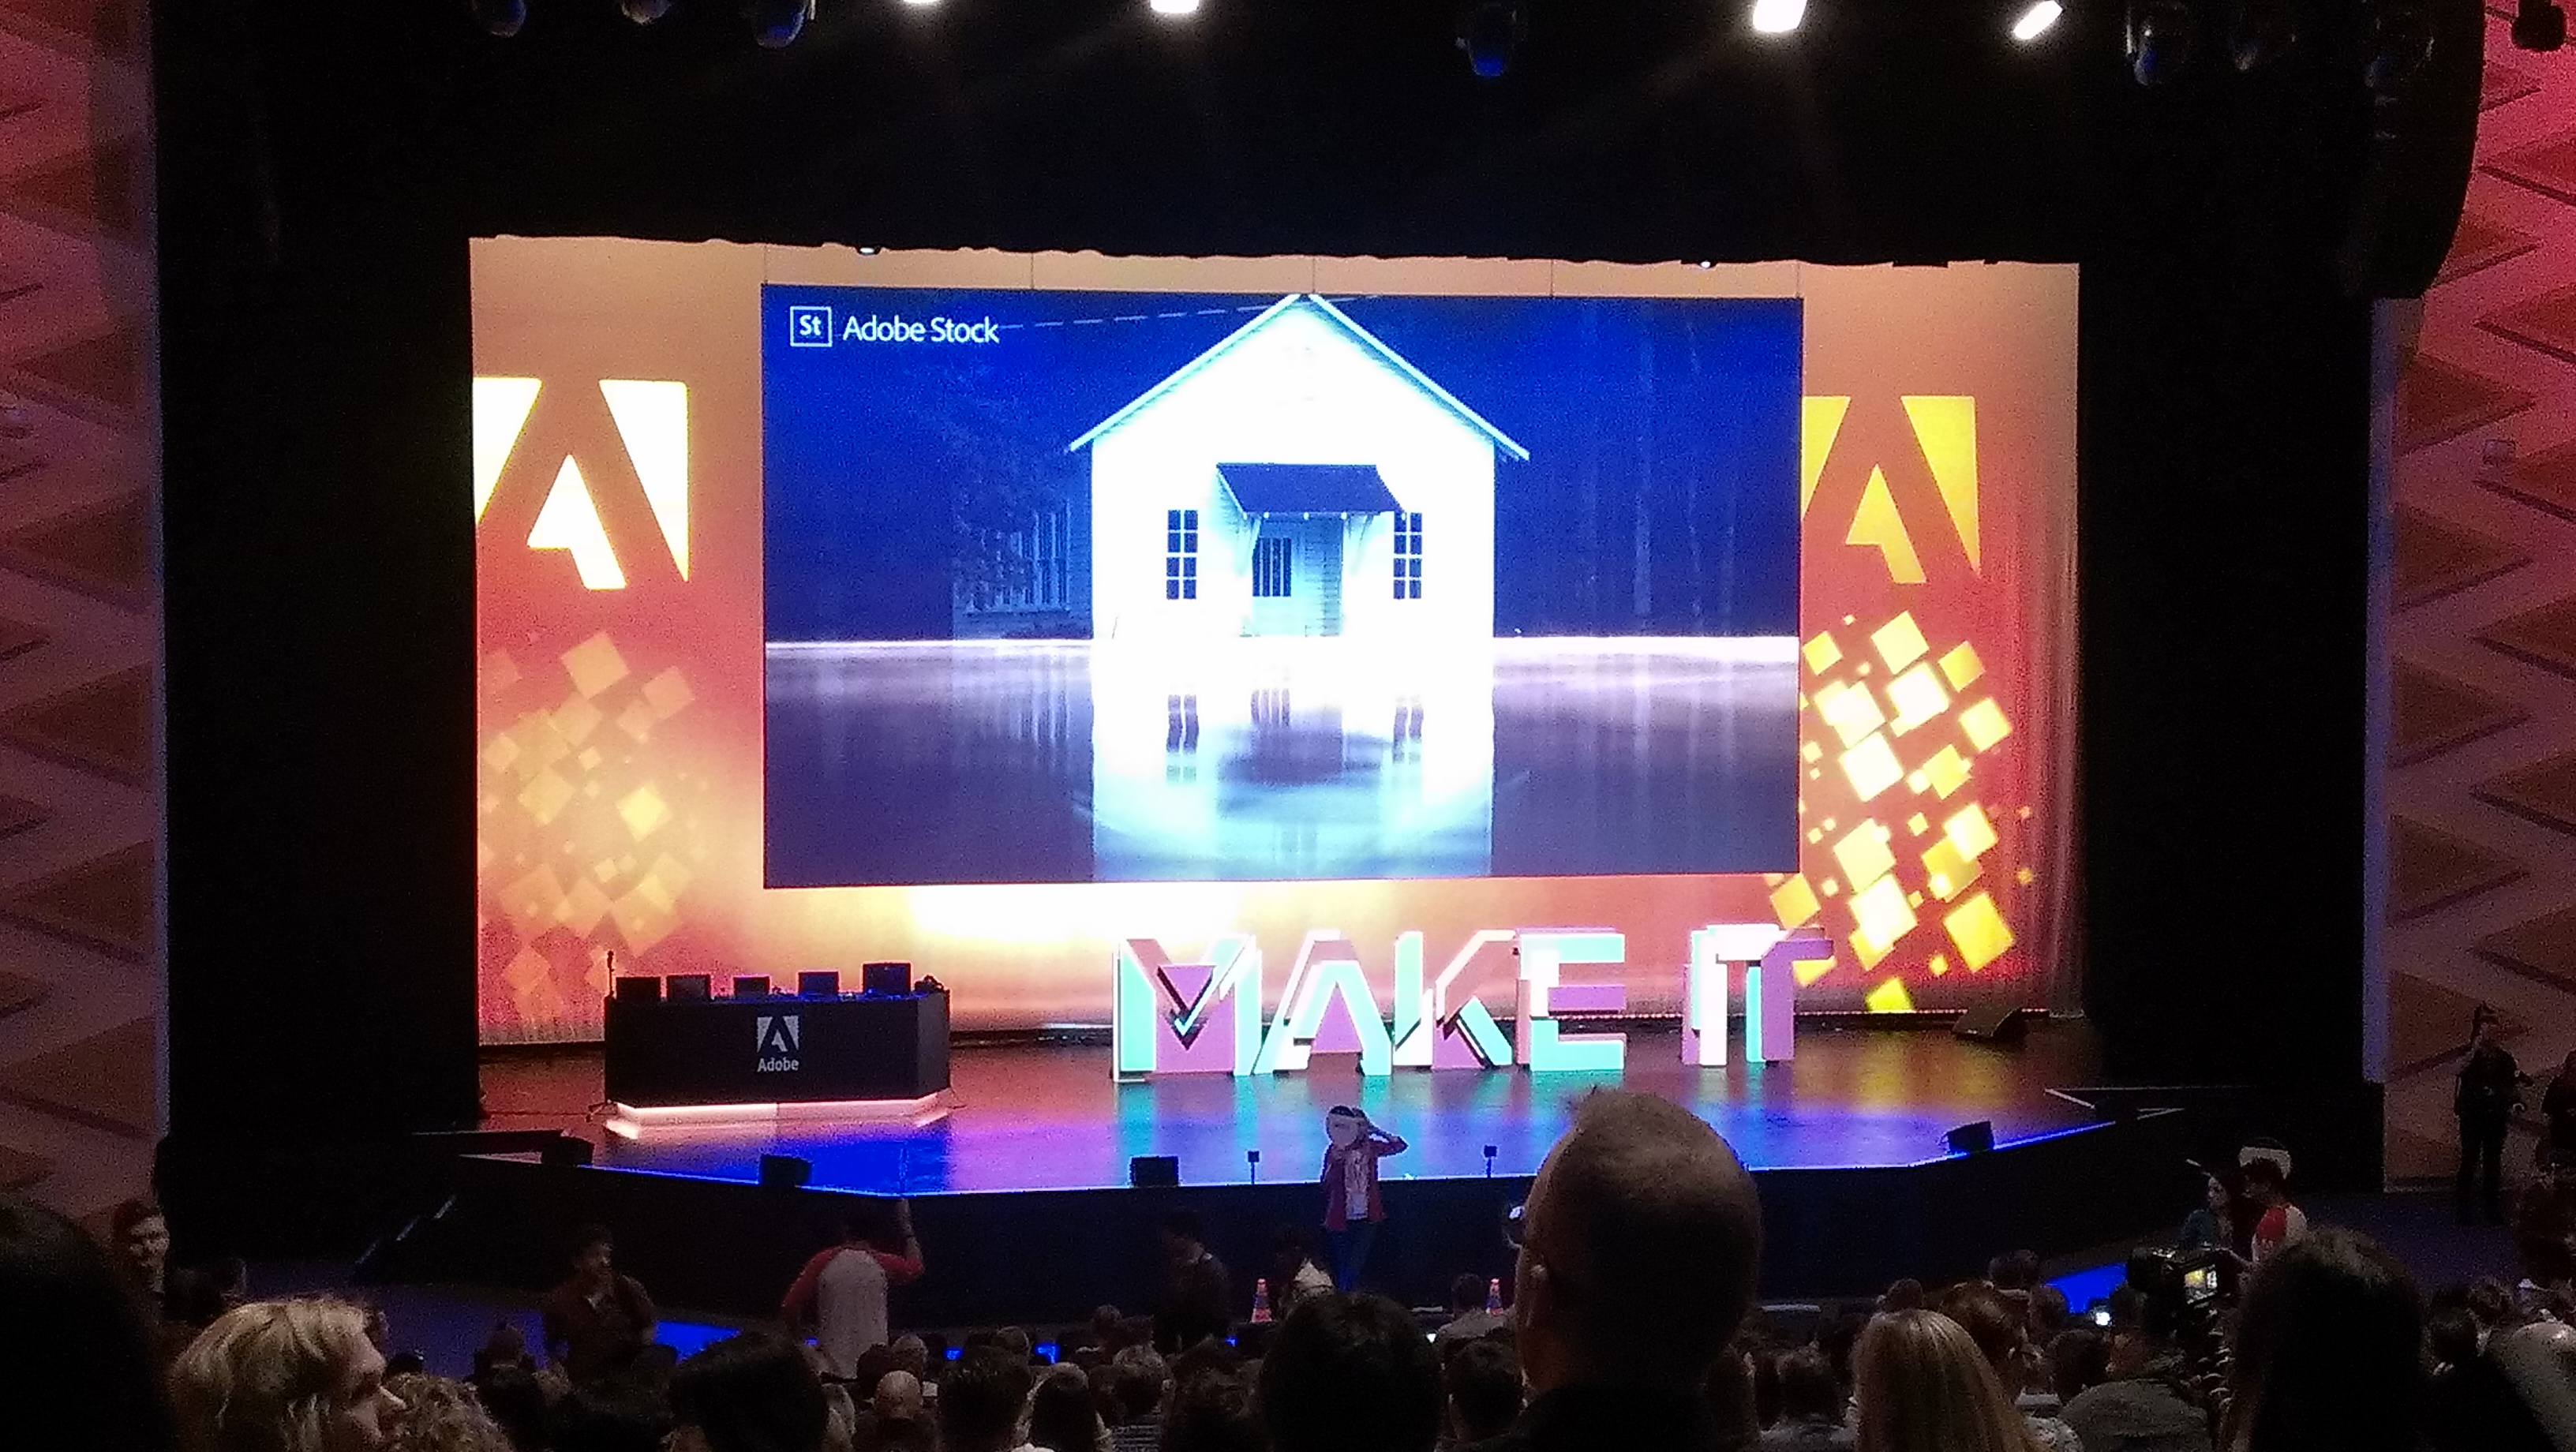 Moments before the start of MAKE-IT 2017